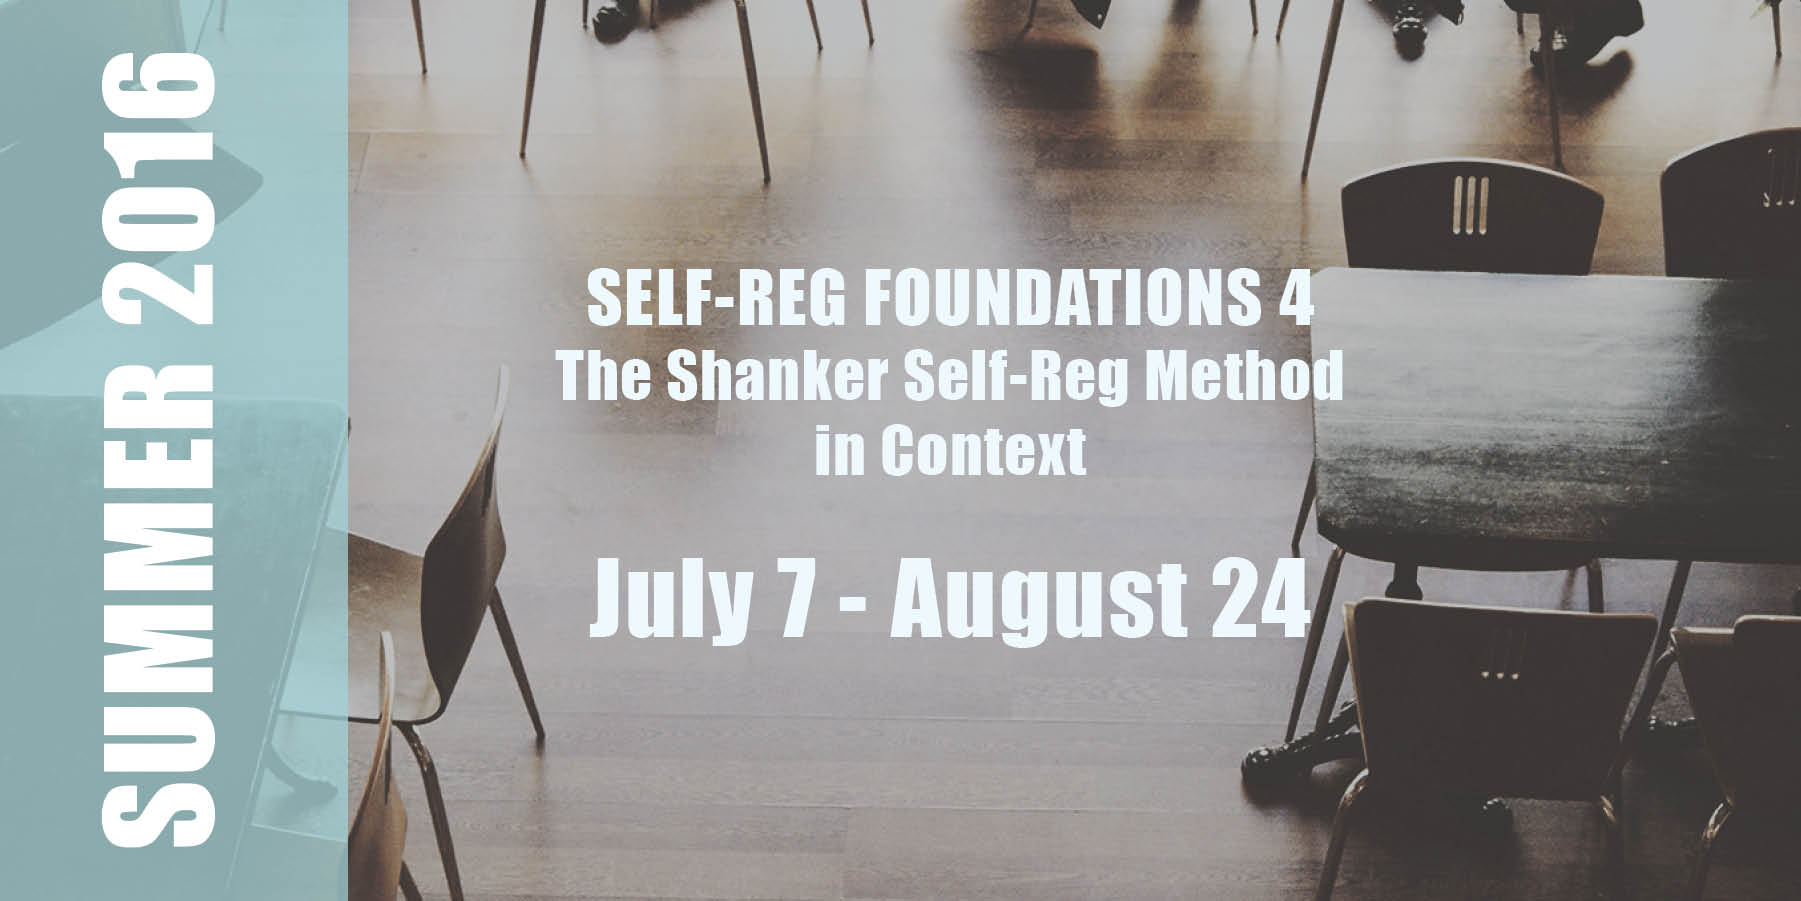 S-R Foundations 4 Date: July 7 - August 24